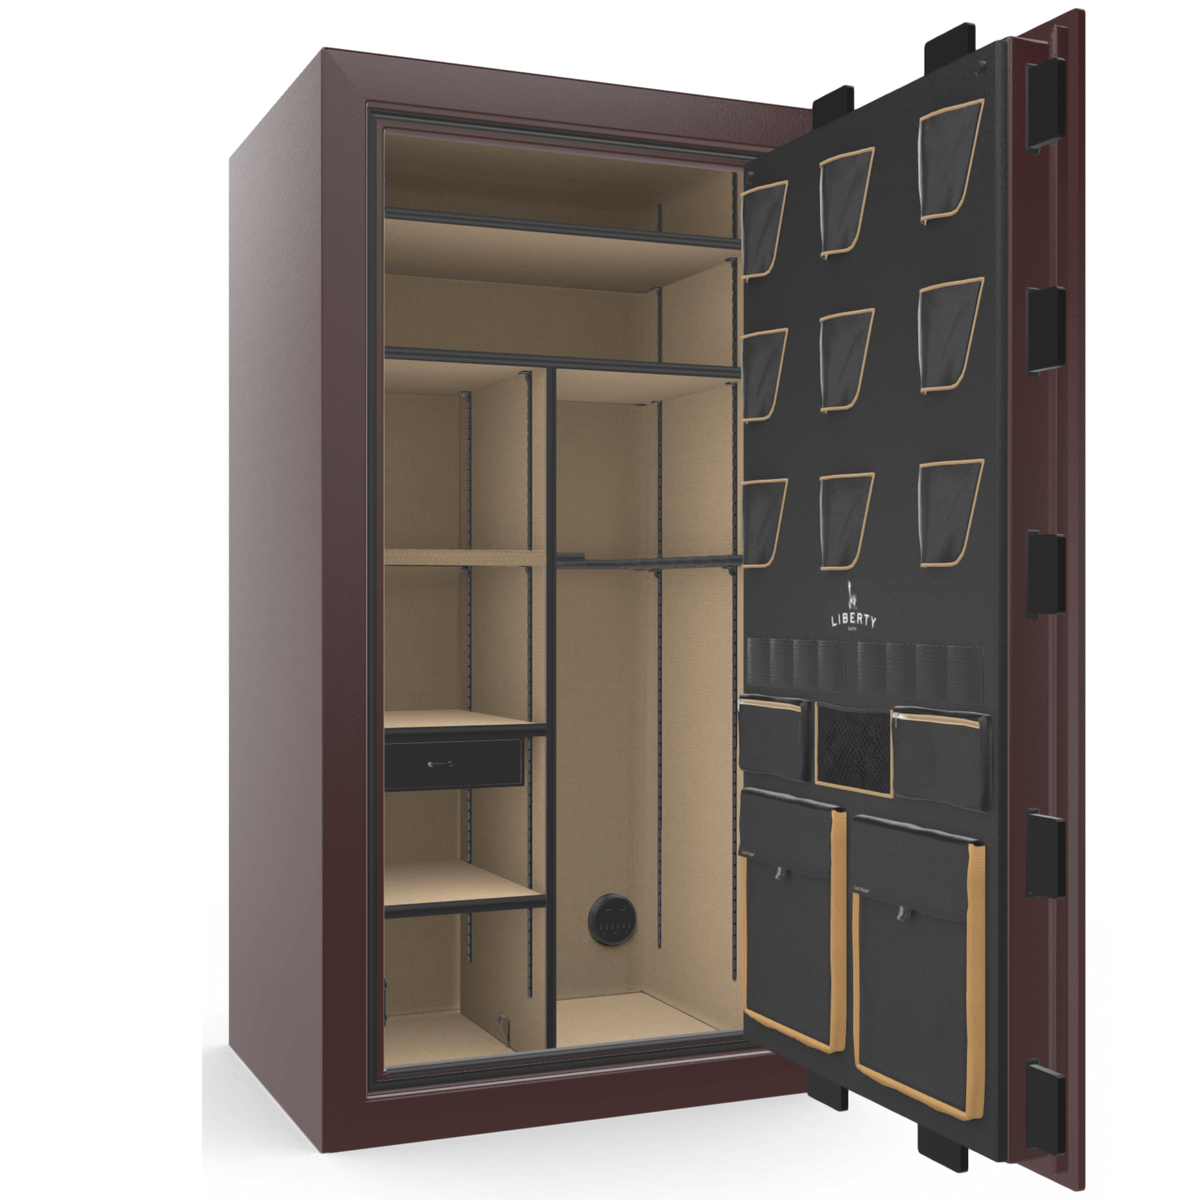 "Classic Plus | 40 | Level 7 Security | 110 Minute Fire Protection | Burgundy | Black Electronic Lock | 65.5""(H) x 36""(W) x 32""(D)"